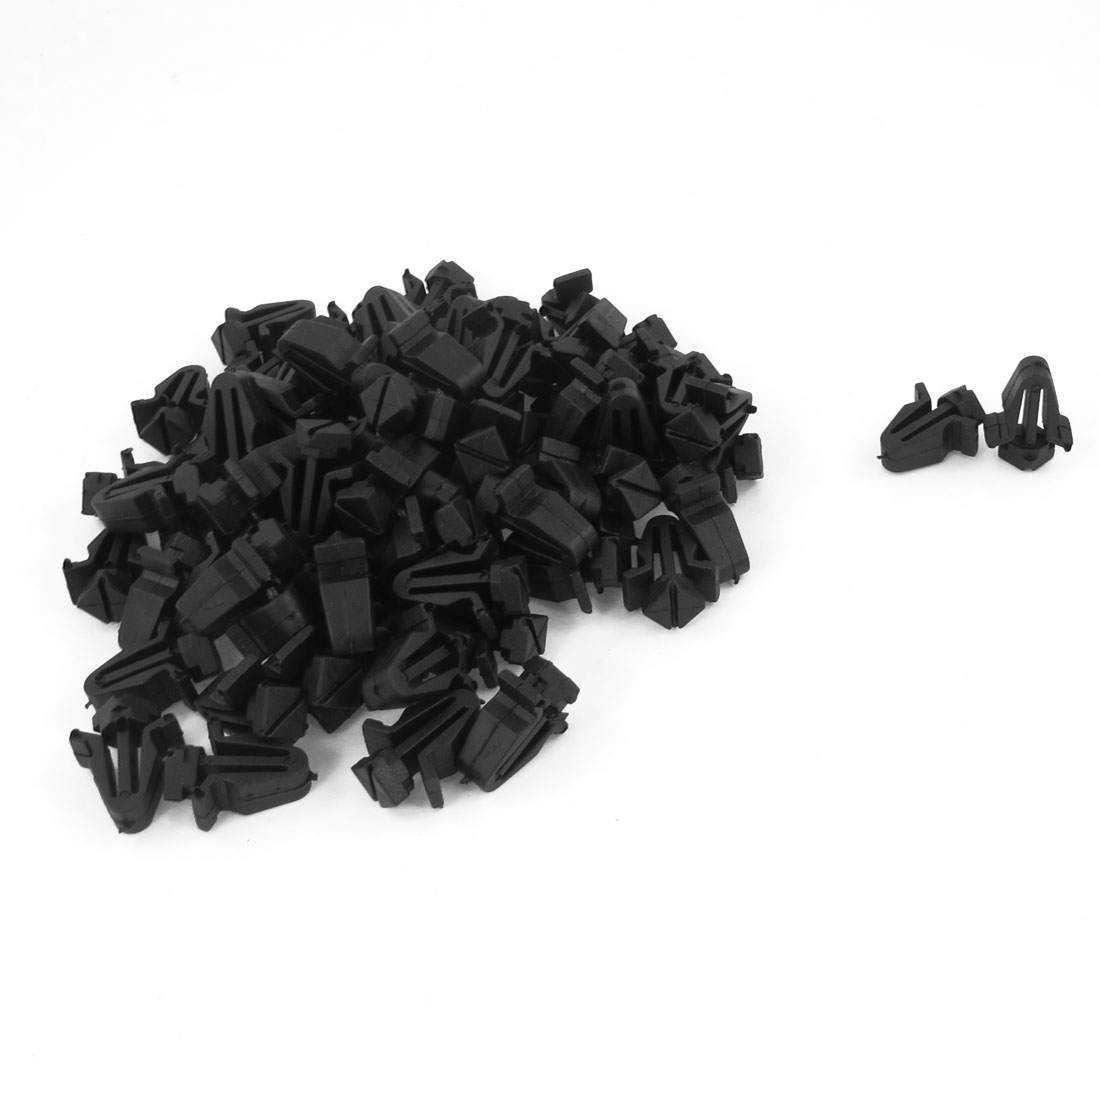 100 Pcs Black Plastic Rivets Fastener Push in Clips Clamps for Cars